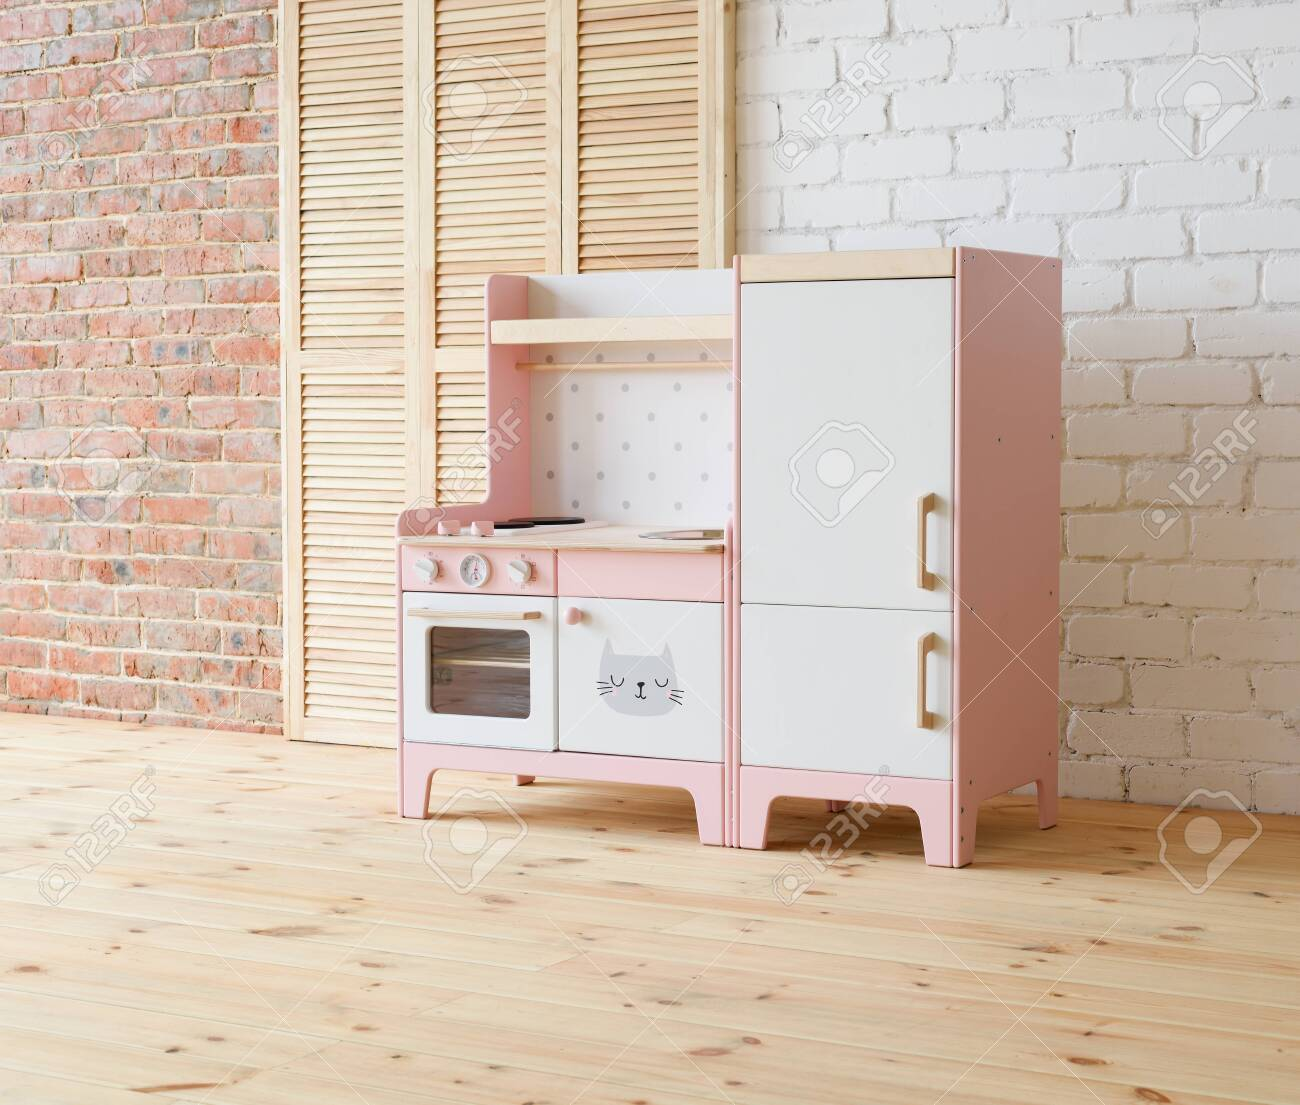 Play Furniture For Children Pink And White Wooden Toy Kitchen